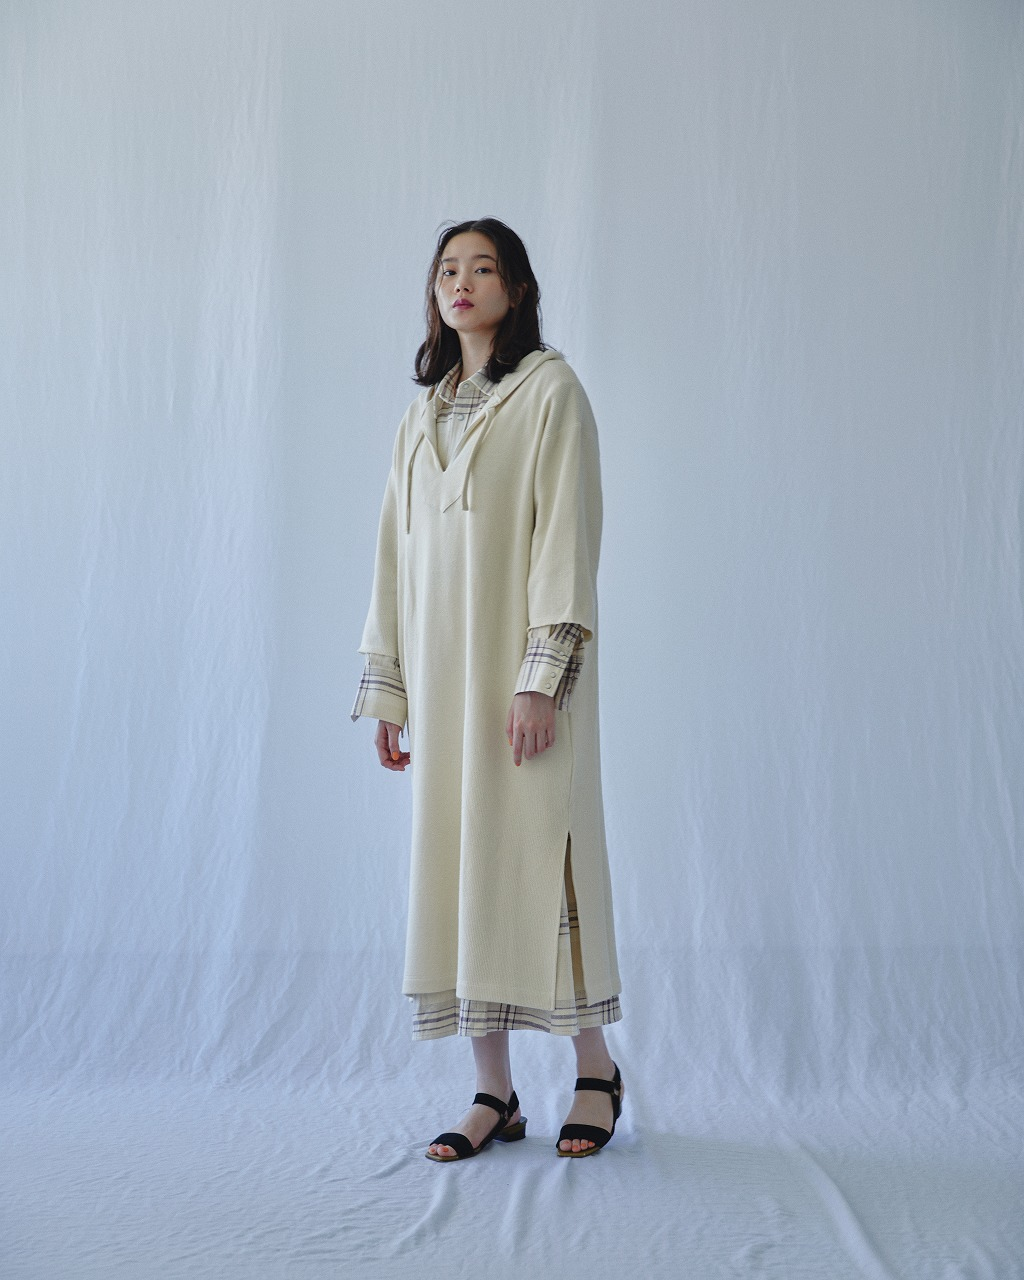 【WOMEN'S 2021 SPRING】JOHNBULL LOOK アイテム